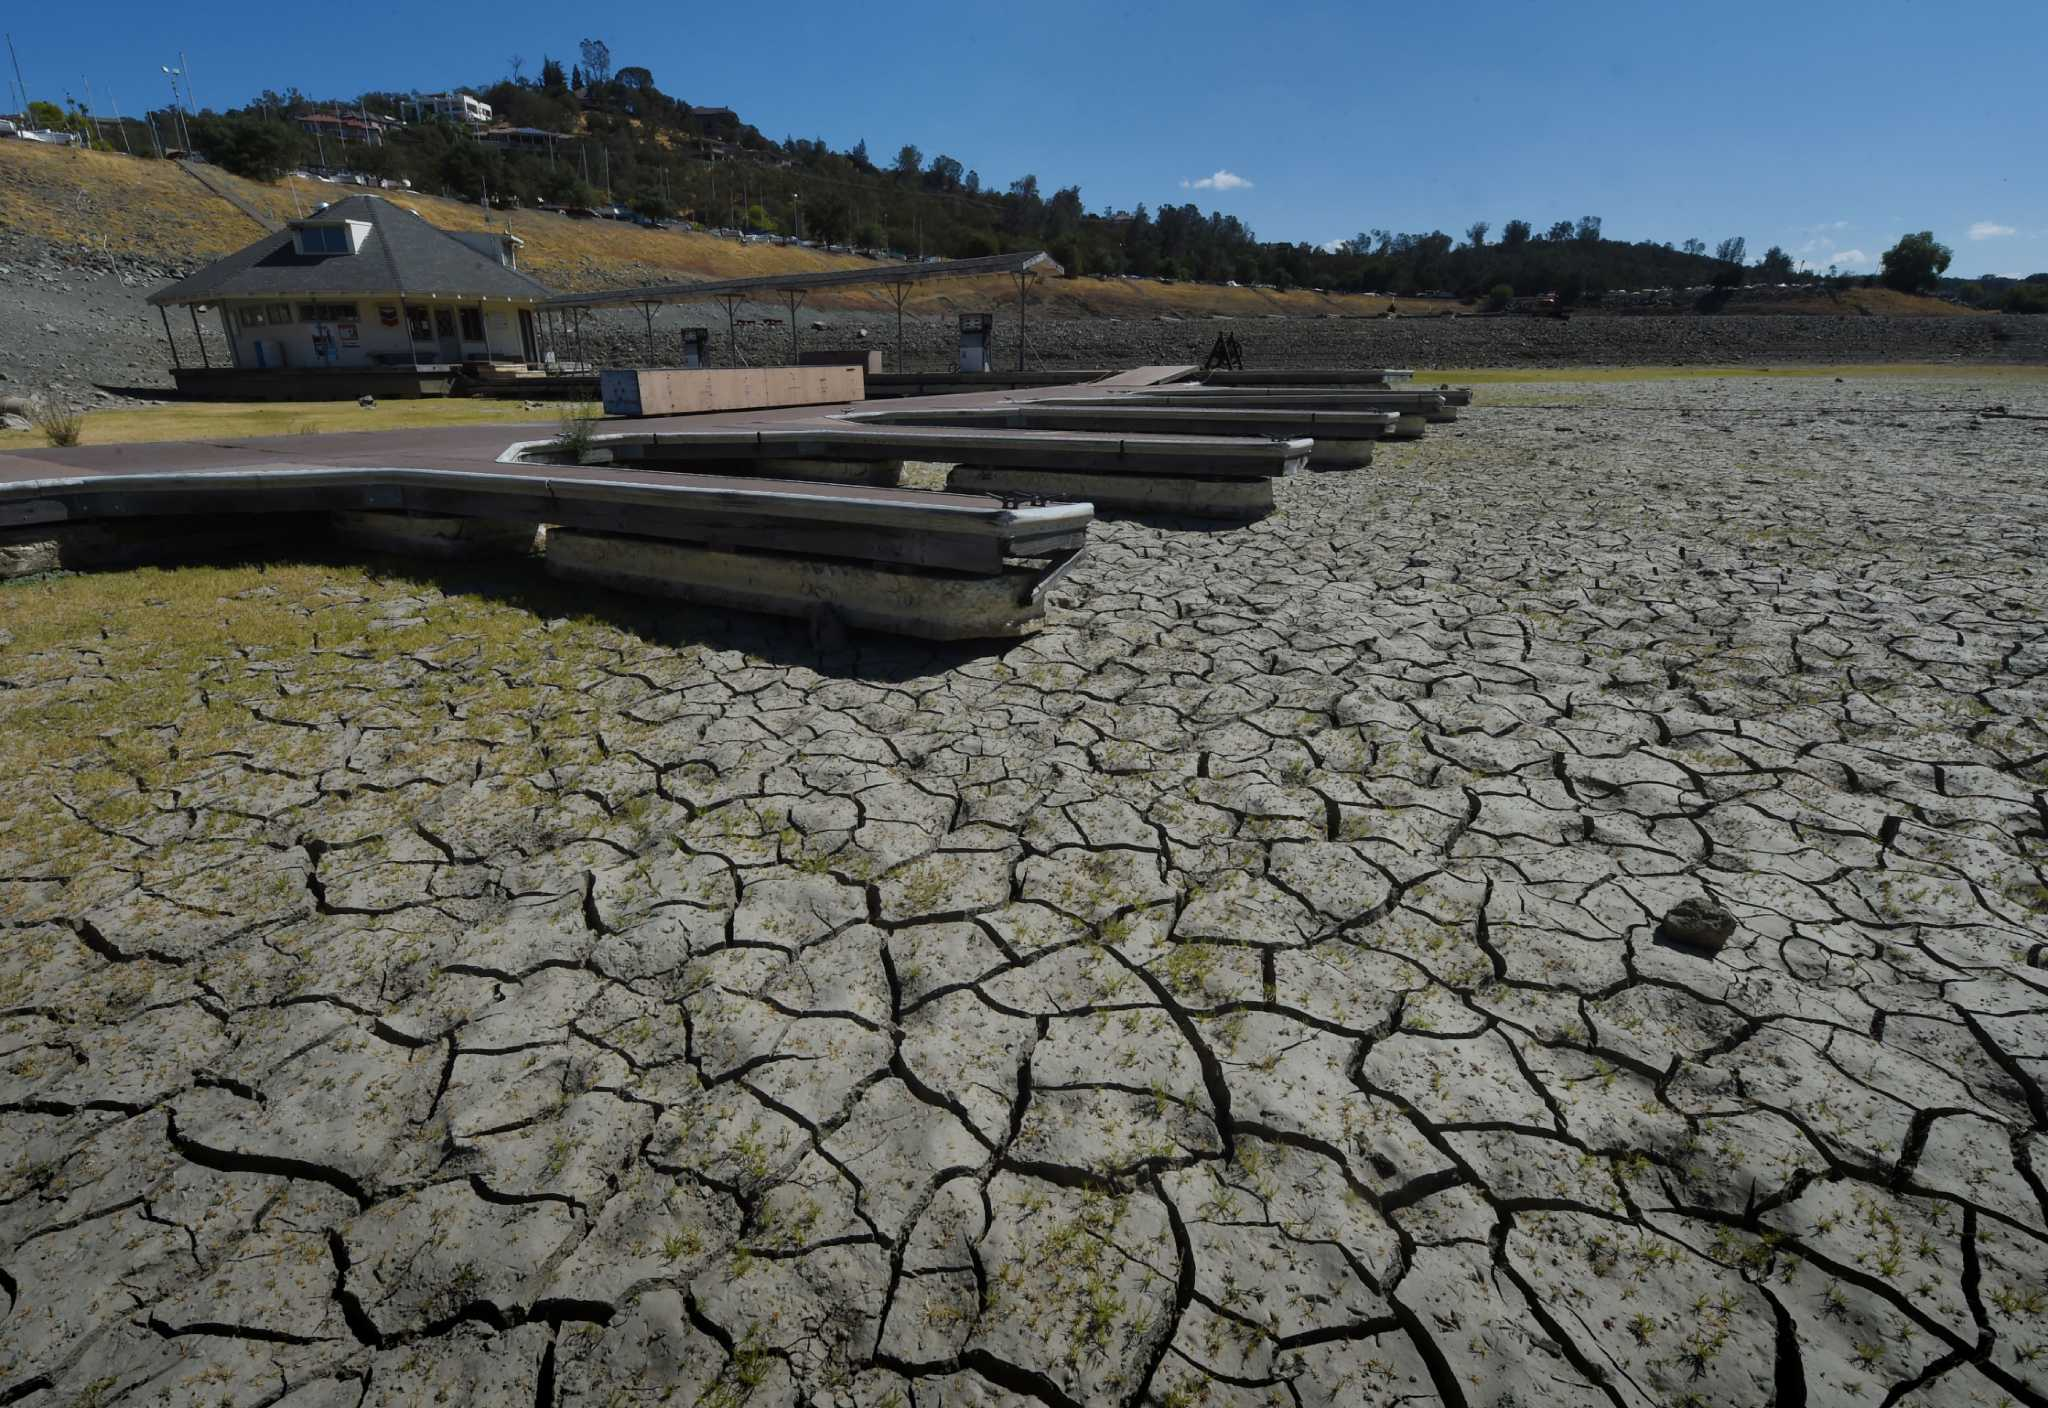 What are California lake's reservoir levels?